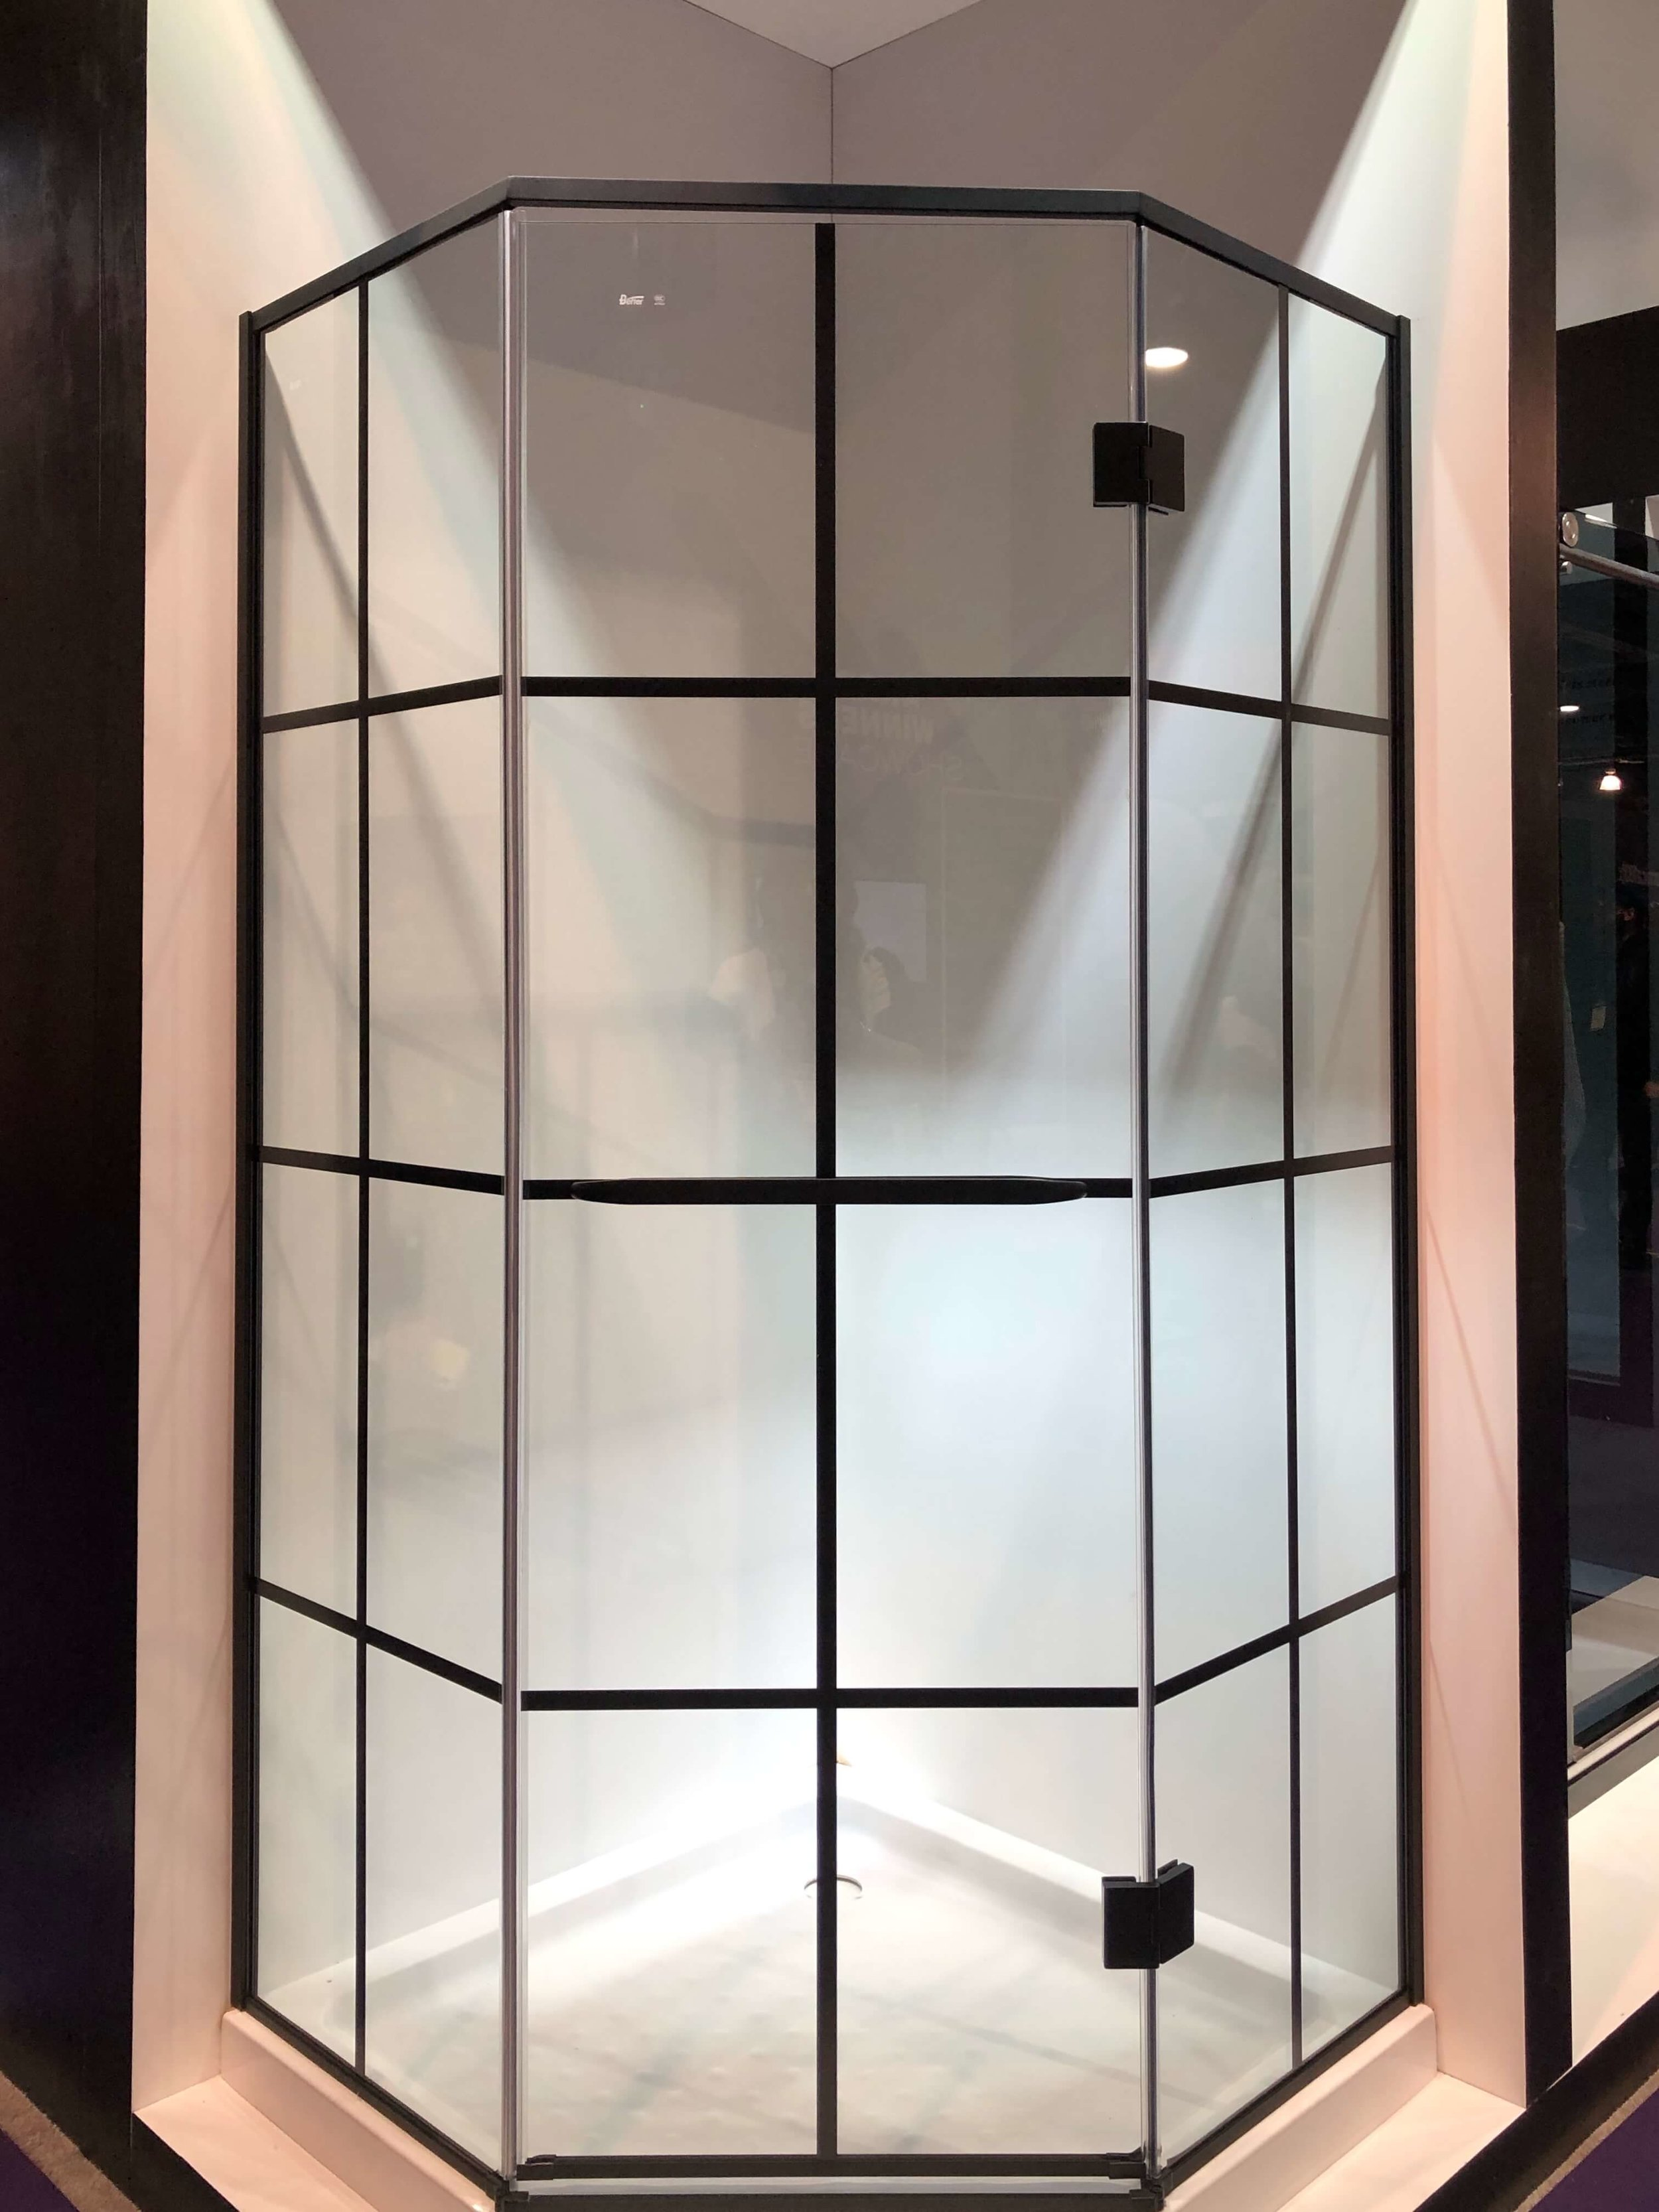 Shower enclosure with black grid from Dreamline | KBIS 2019 Surfaces Trends